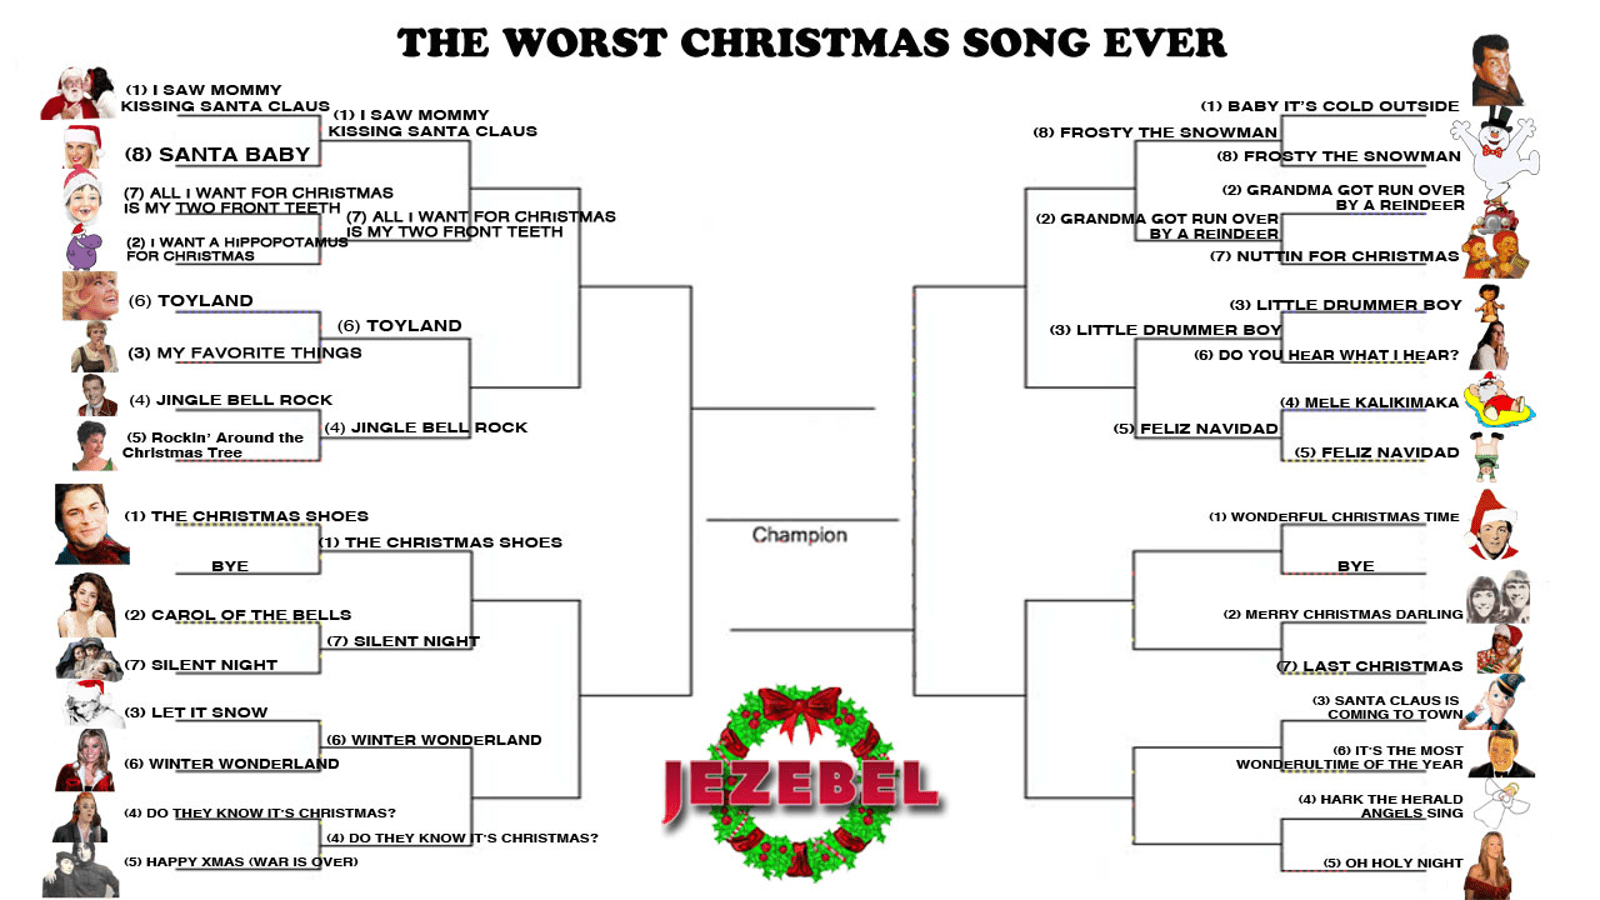 December Madness Journey To The Worst Christmas Song Ever